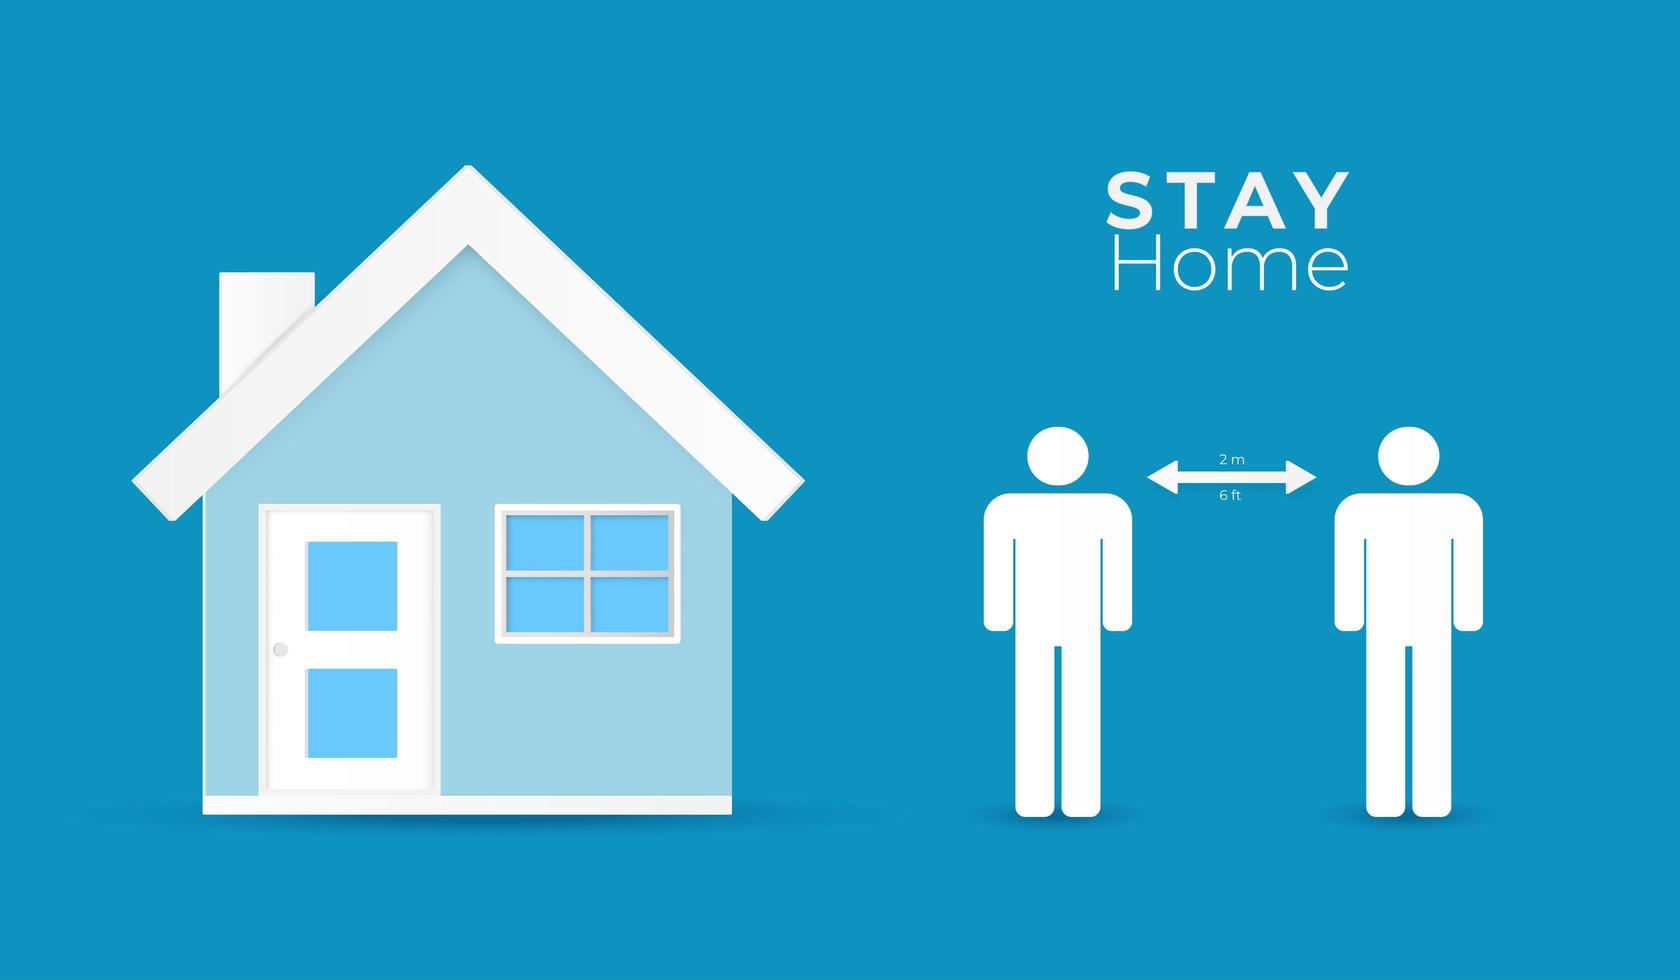 Stay home and social distancing poster vector